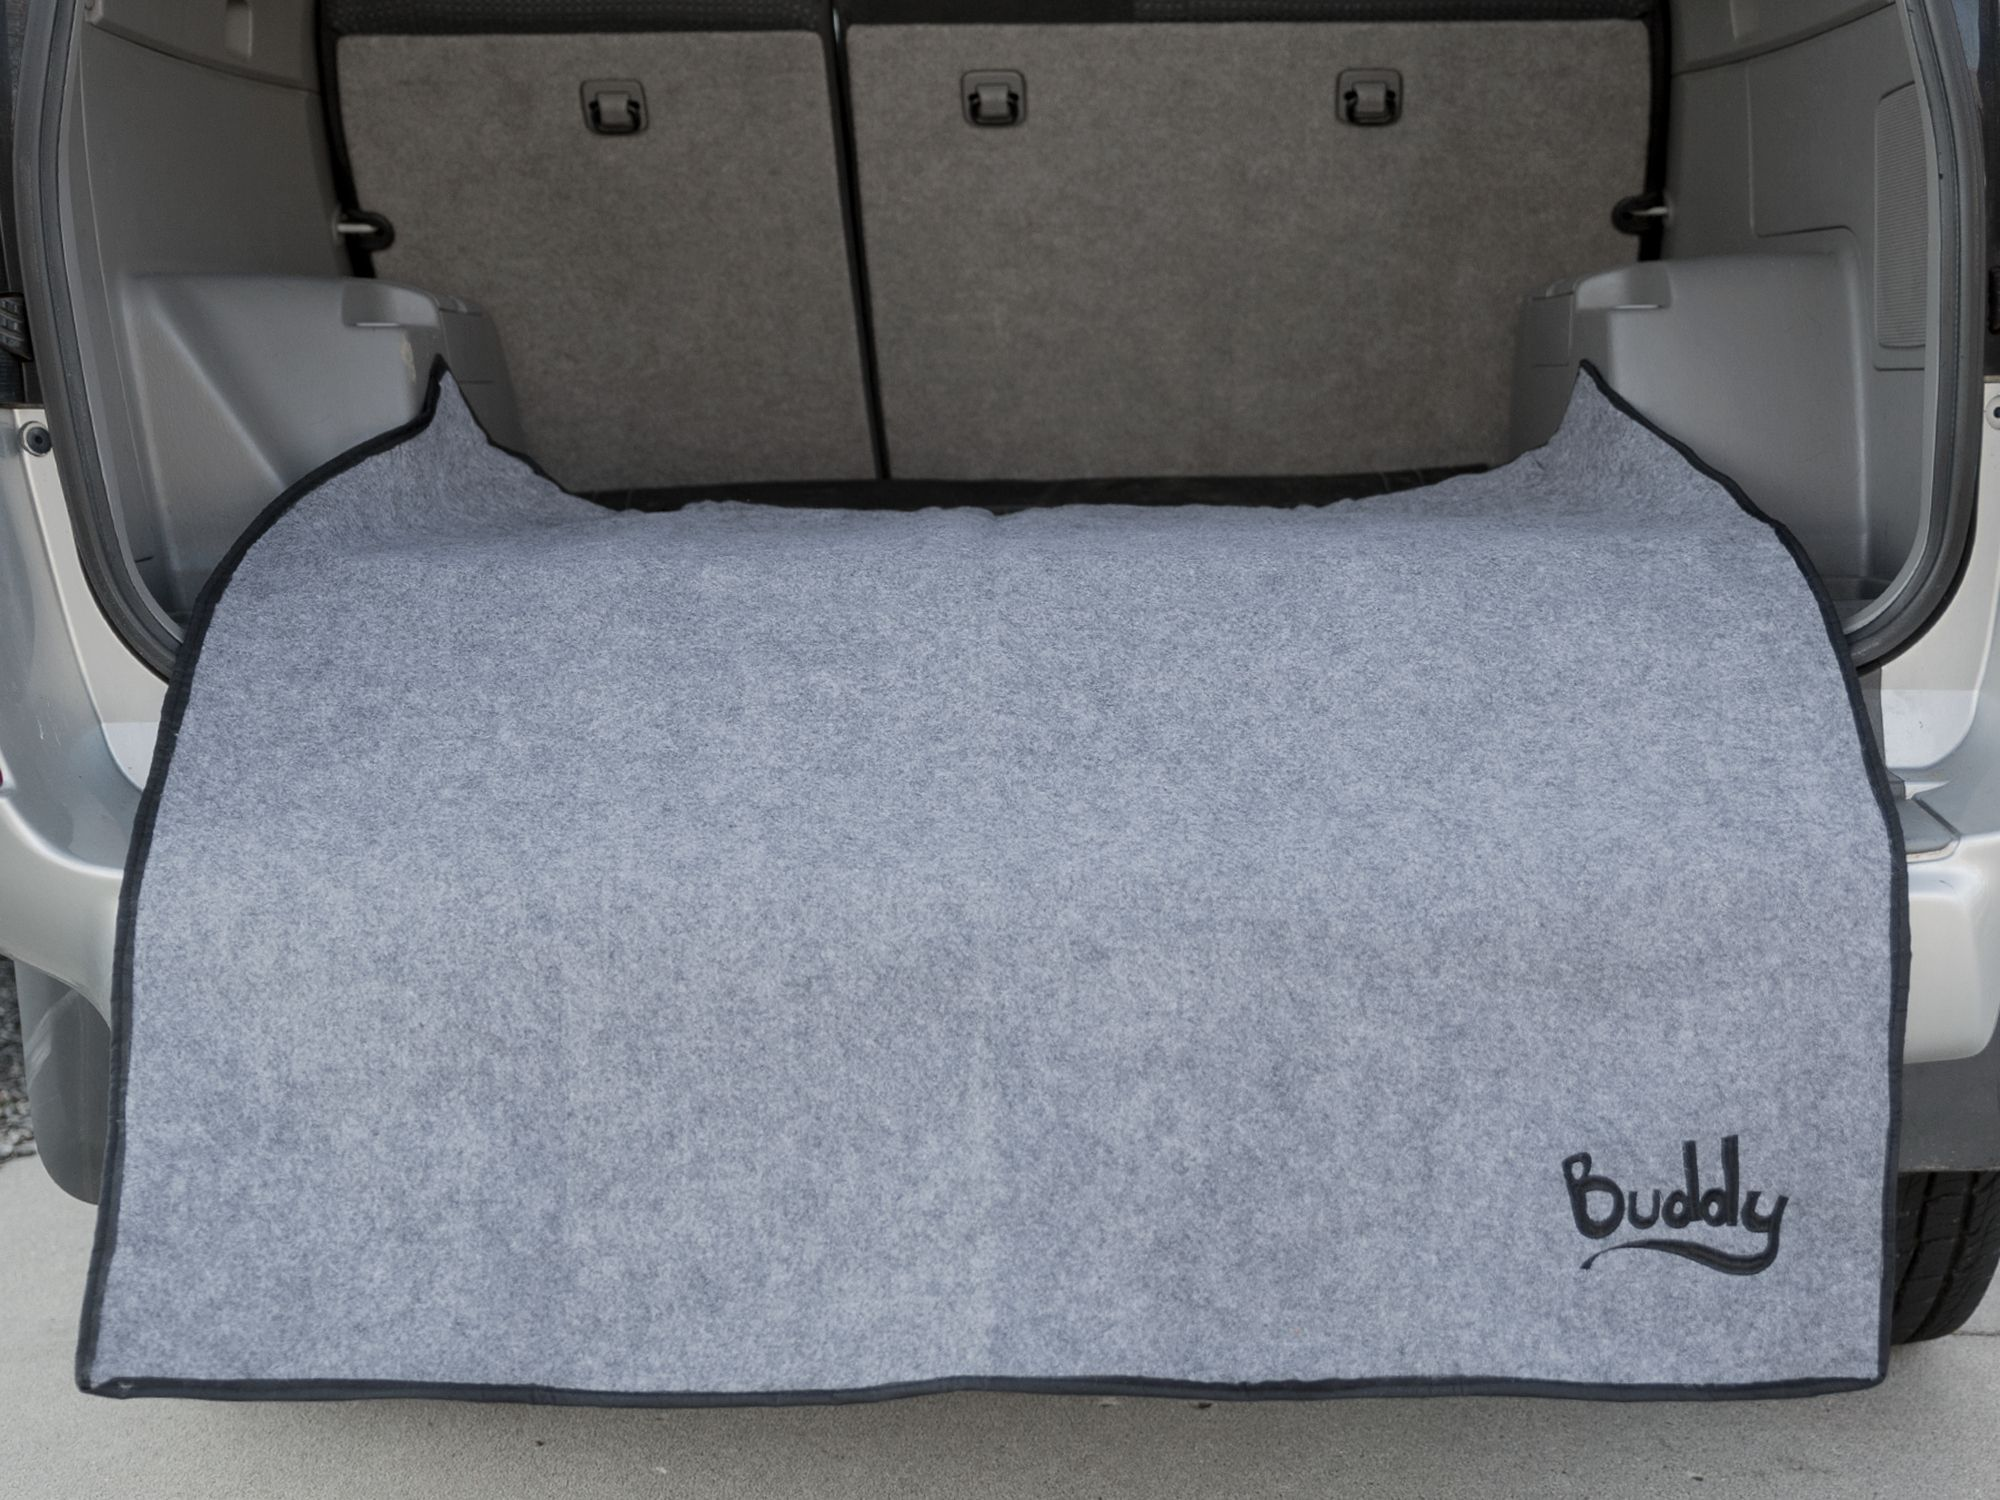 340d8f749720aa263920451adc06fa3c Take A Look About Jeep Dog Accessories with Captivating Gallery Cars Review